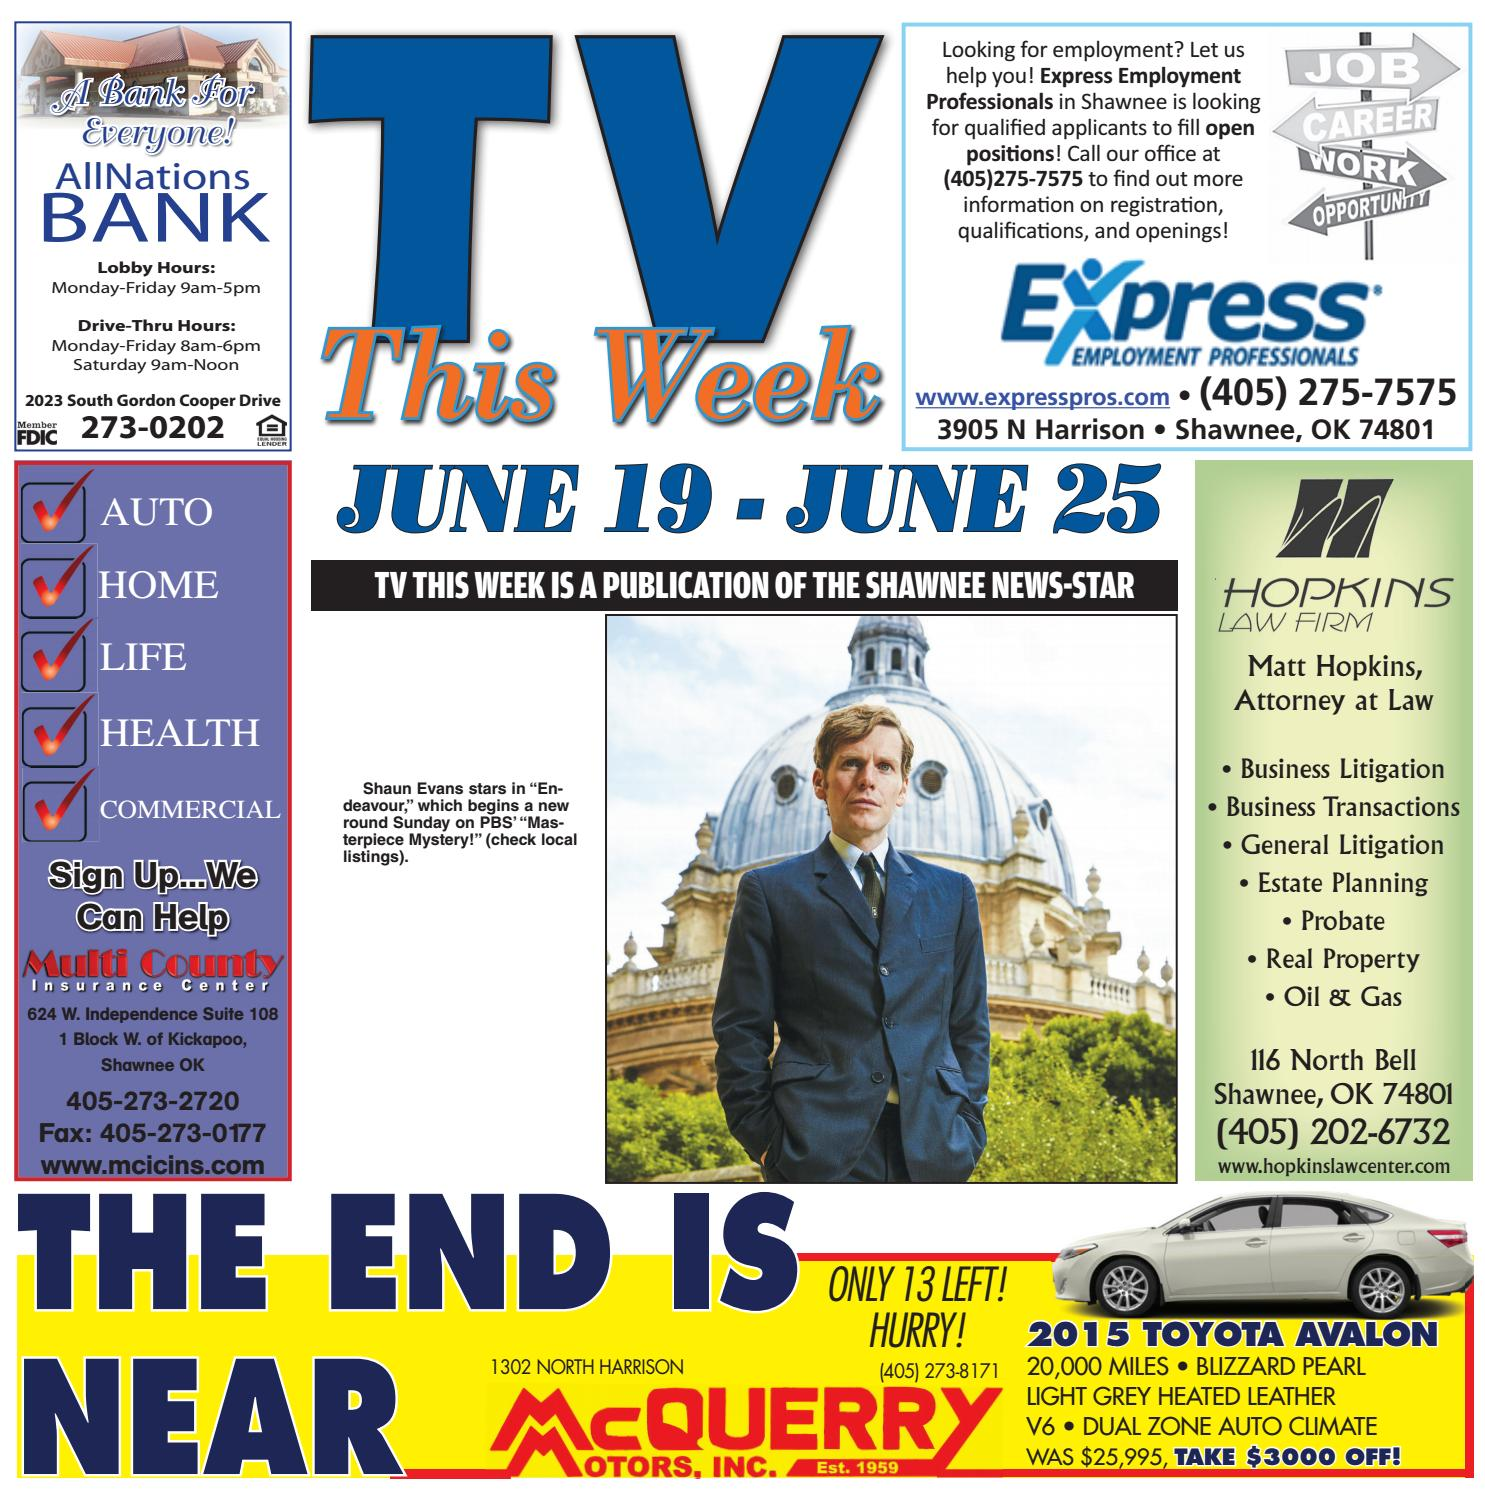 ccd36e88668a 6 19 tv this week new by Shawnee News-Star - issuu